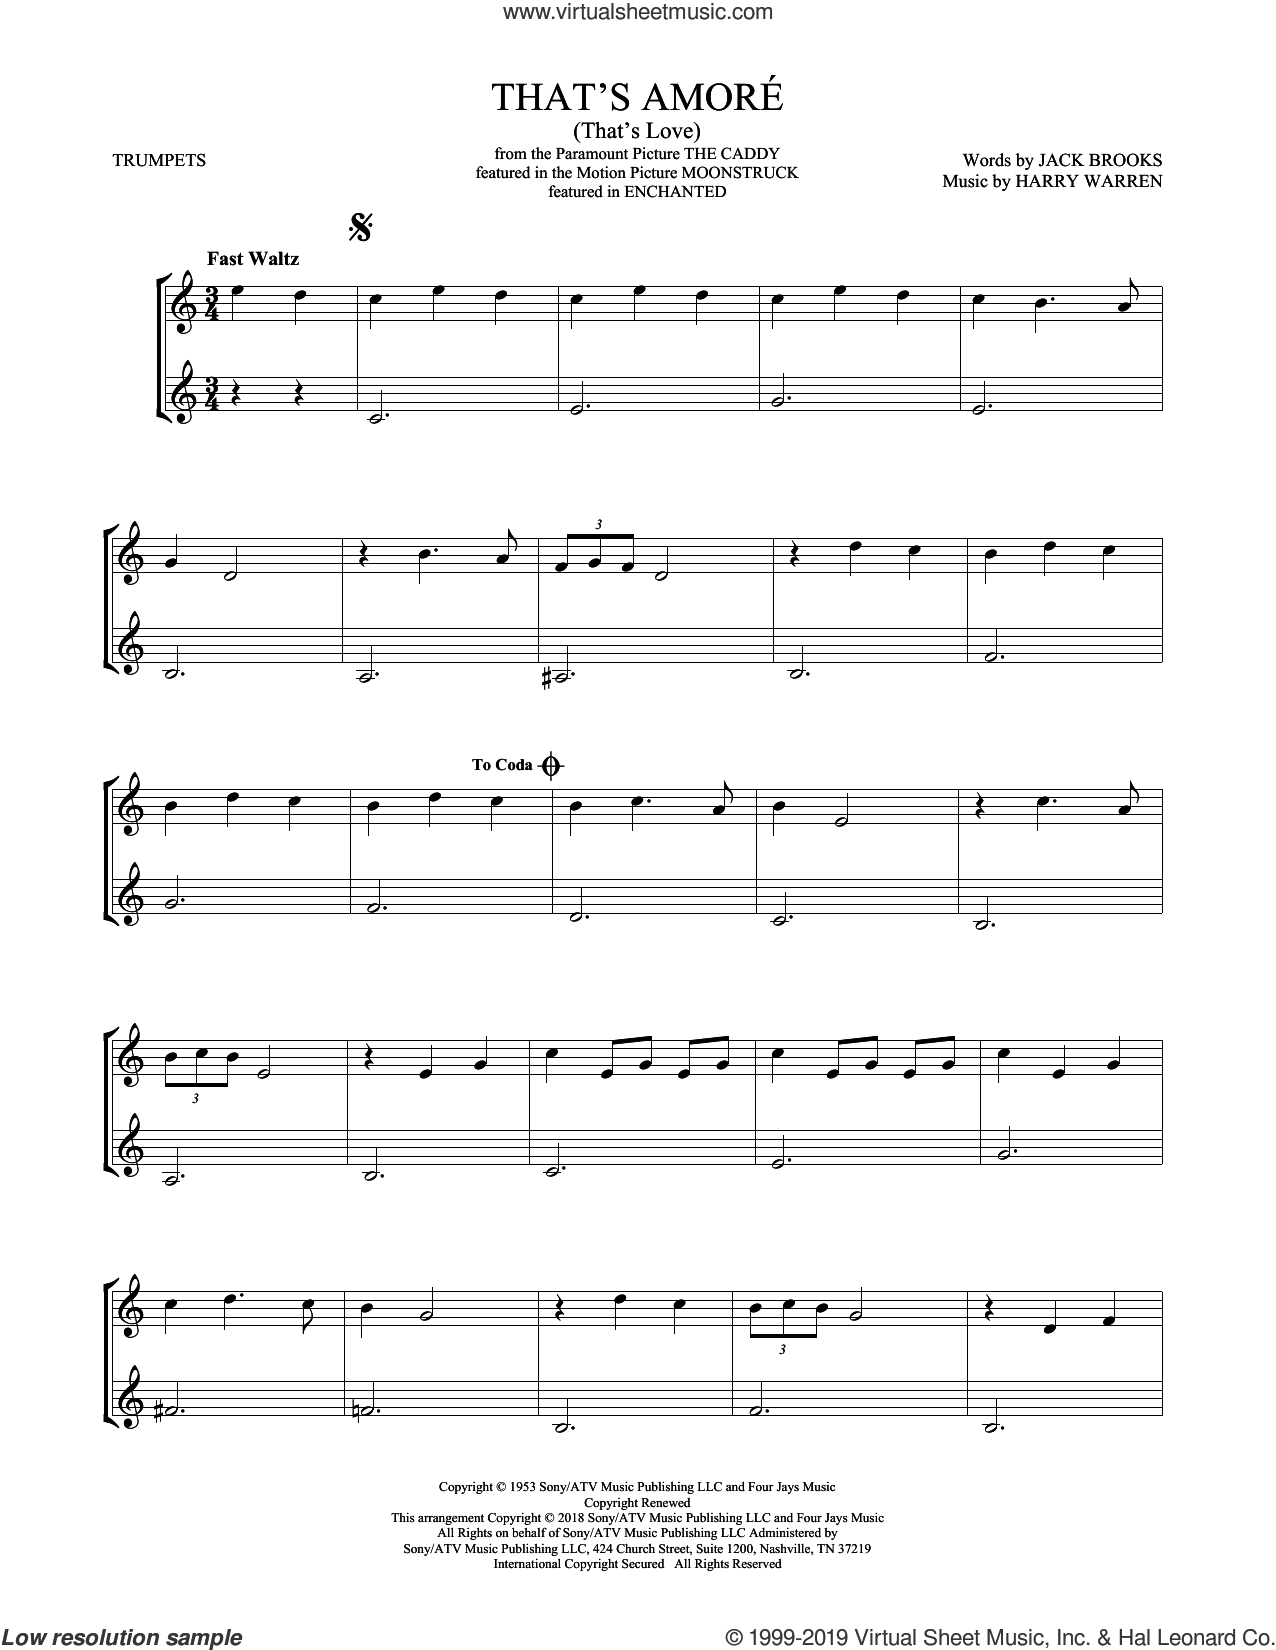 That's Amore (That's Love) sheet music for two trumpets (duet, duets) by Dean Martin, Harry Warren and Jack Brooks, intermediate skill level